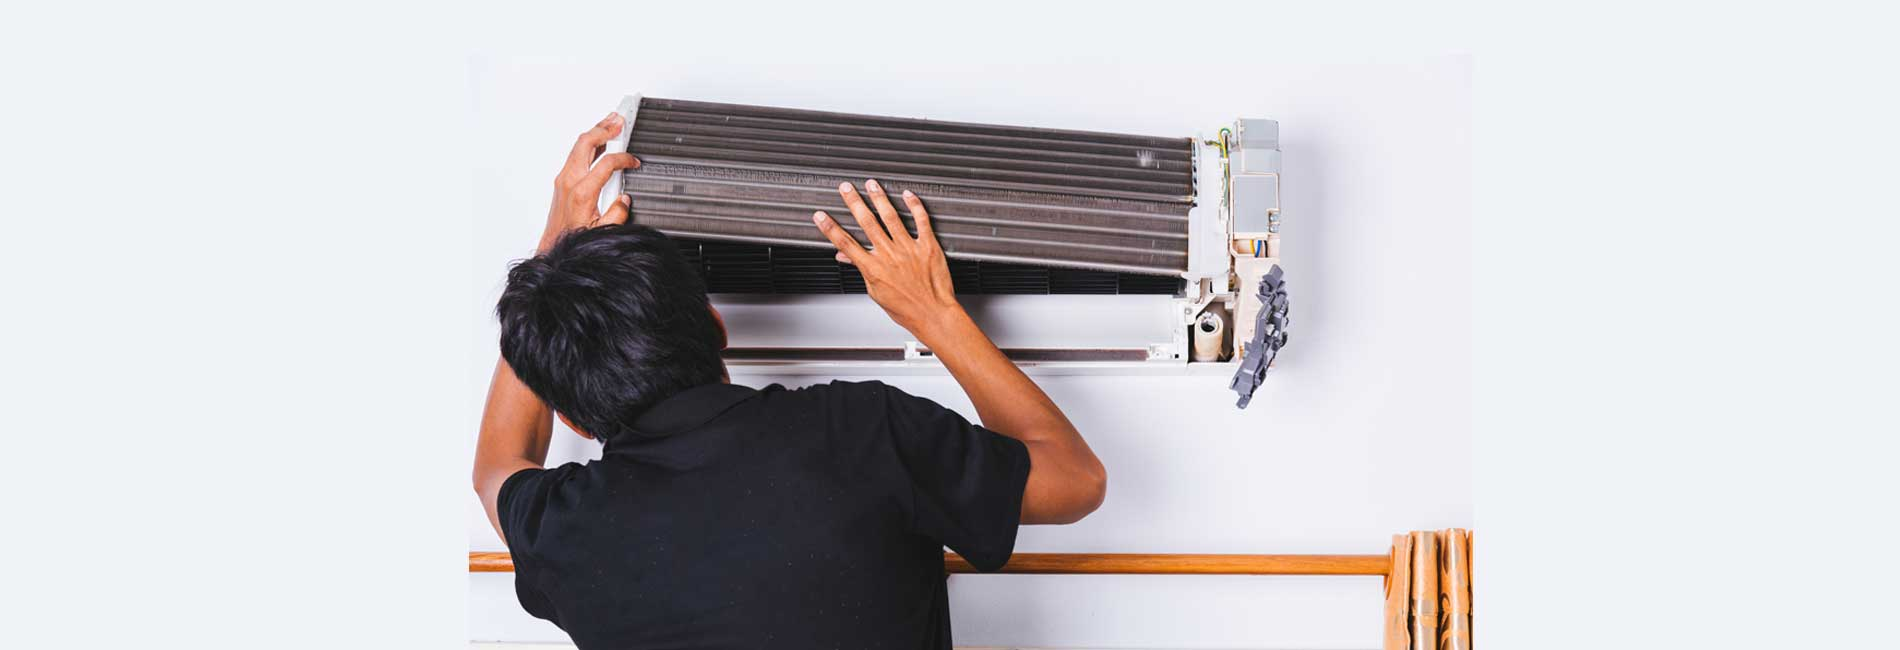 Bluestar Air Condition Repair in Athipattu